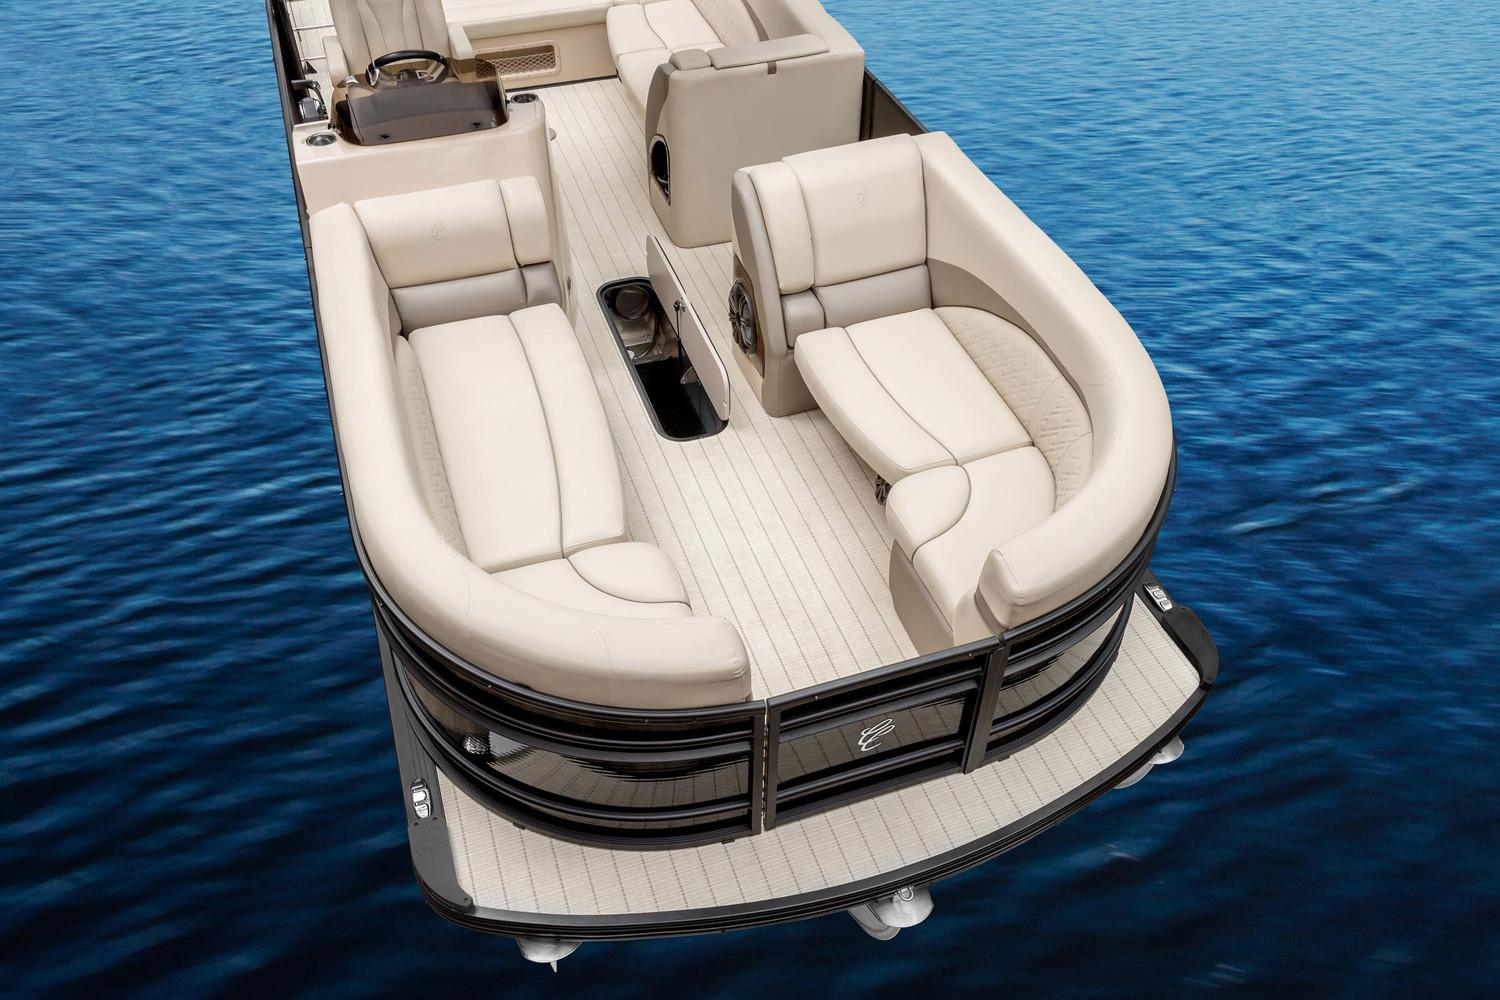 2017 Cypress Cay Cayman LE 230 in Manitou Beach, Michigan